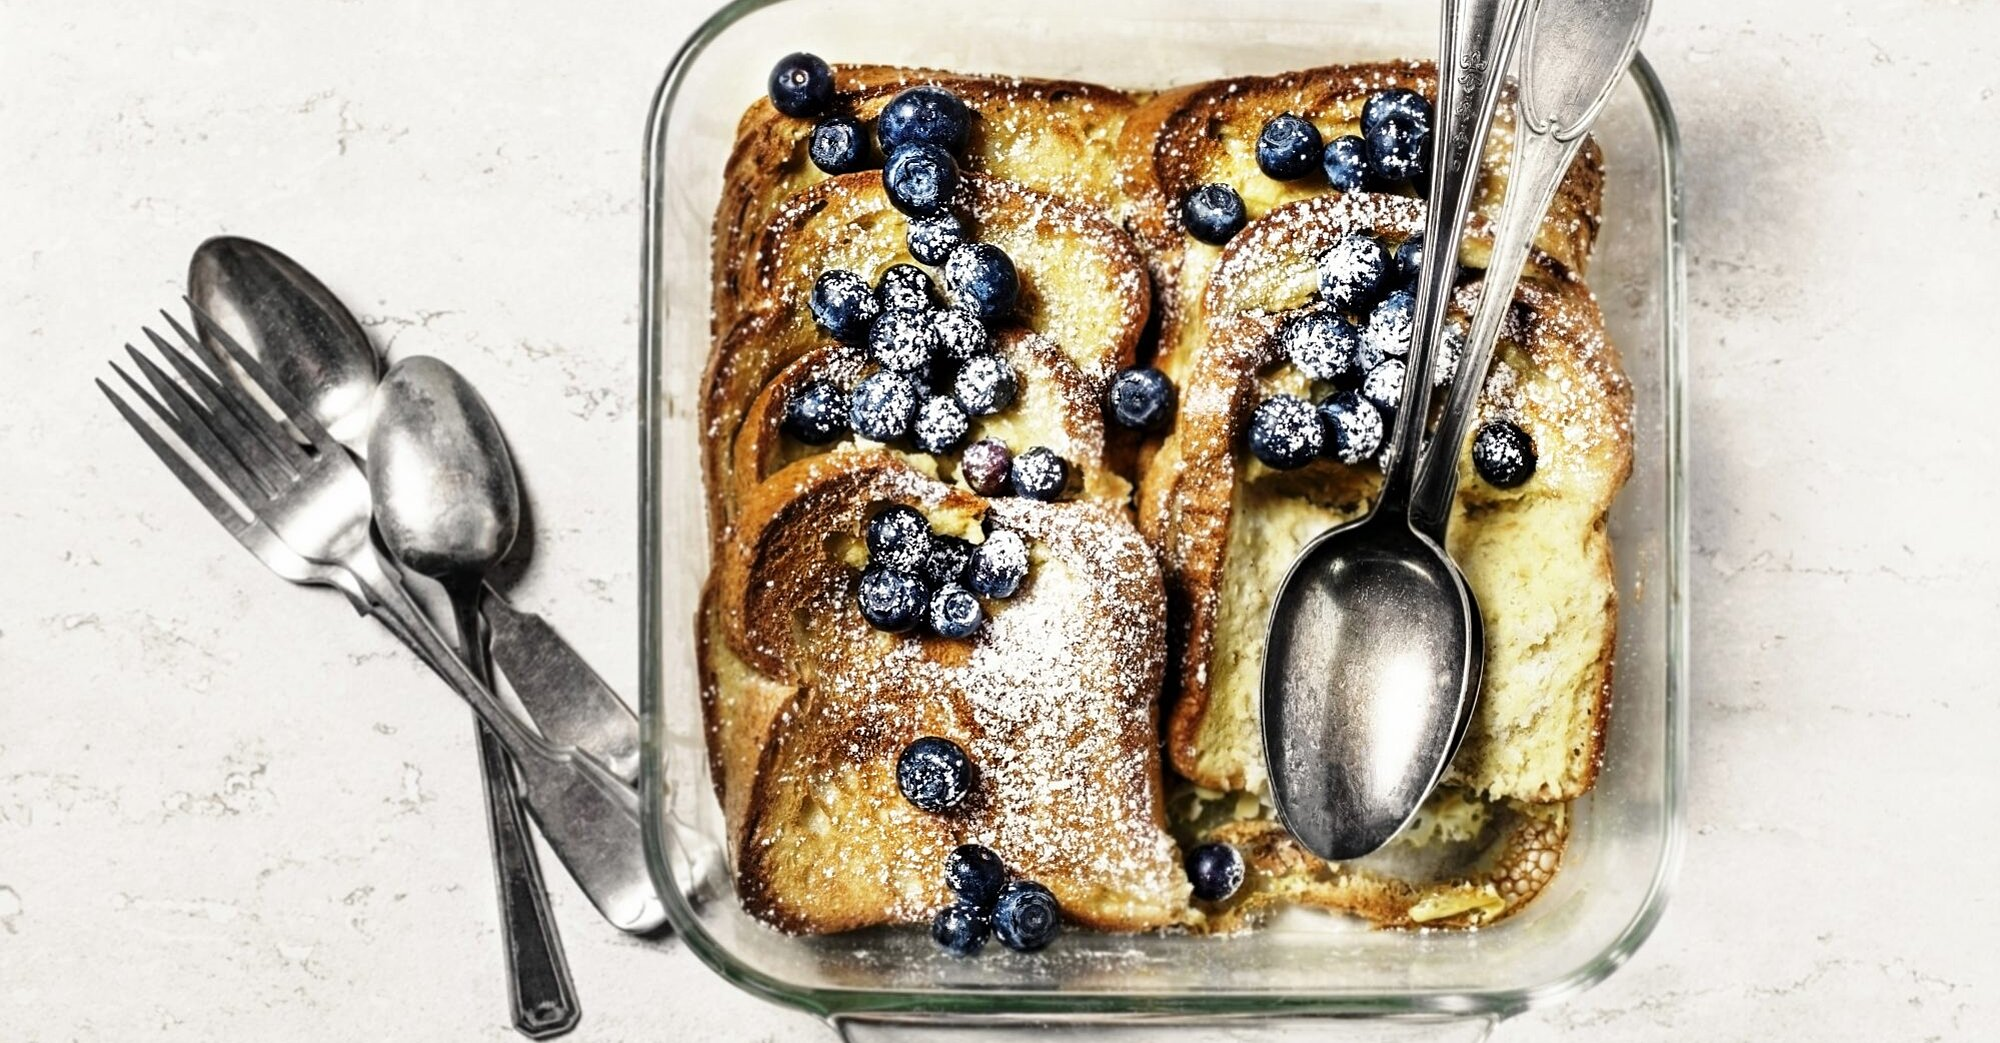 7 Tips for Making Better French Toast